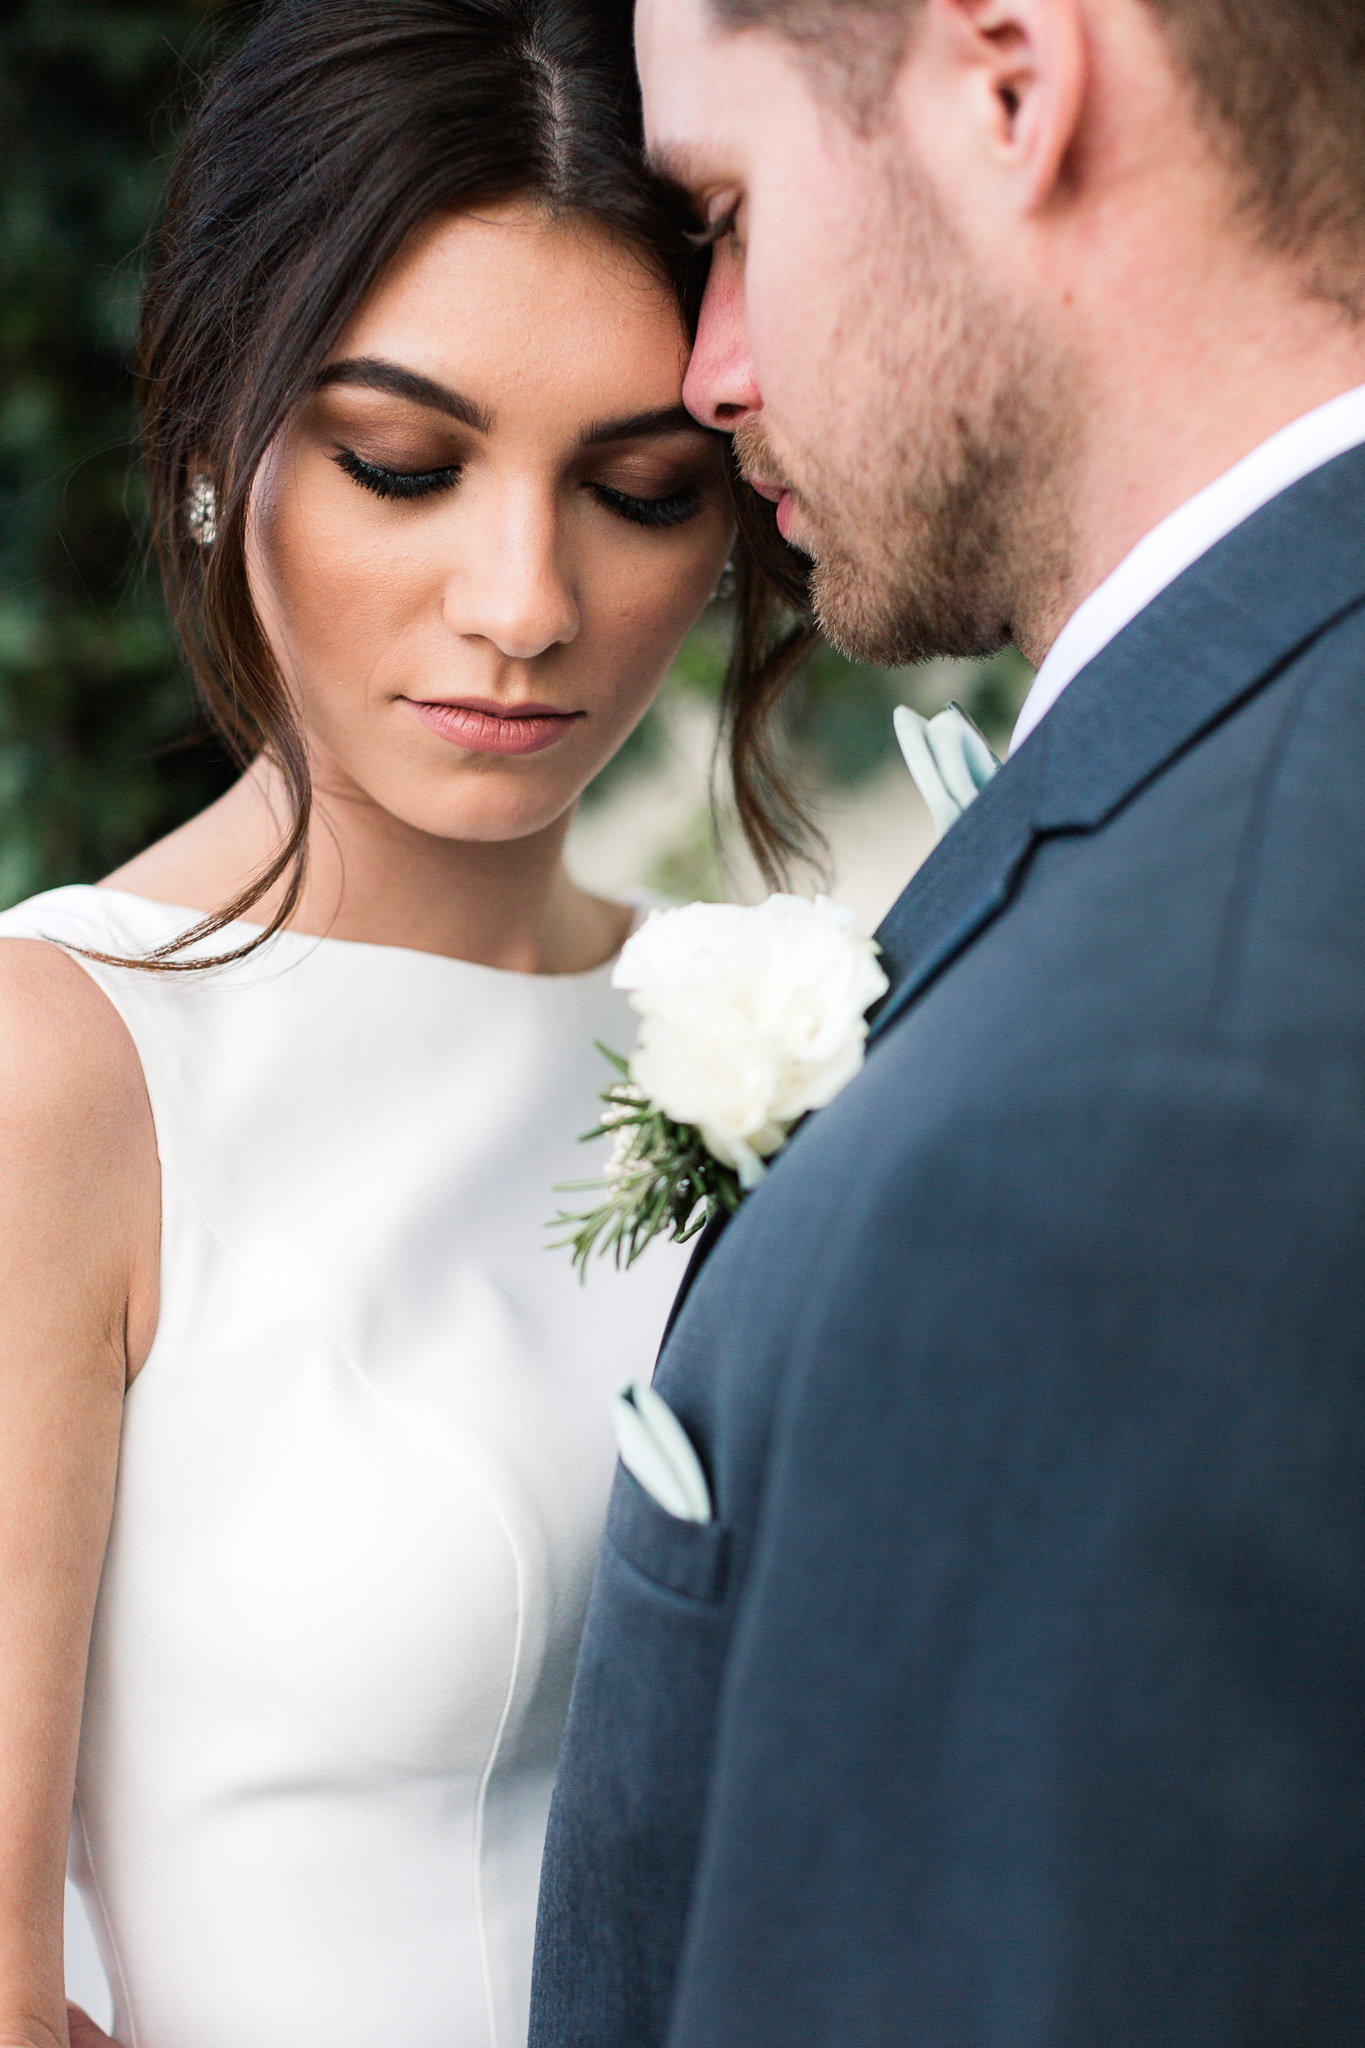 bridal style - photo by B.Matthews Creative https://ruffledblog.com/organic-italian-inspired-wedding-ideas